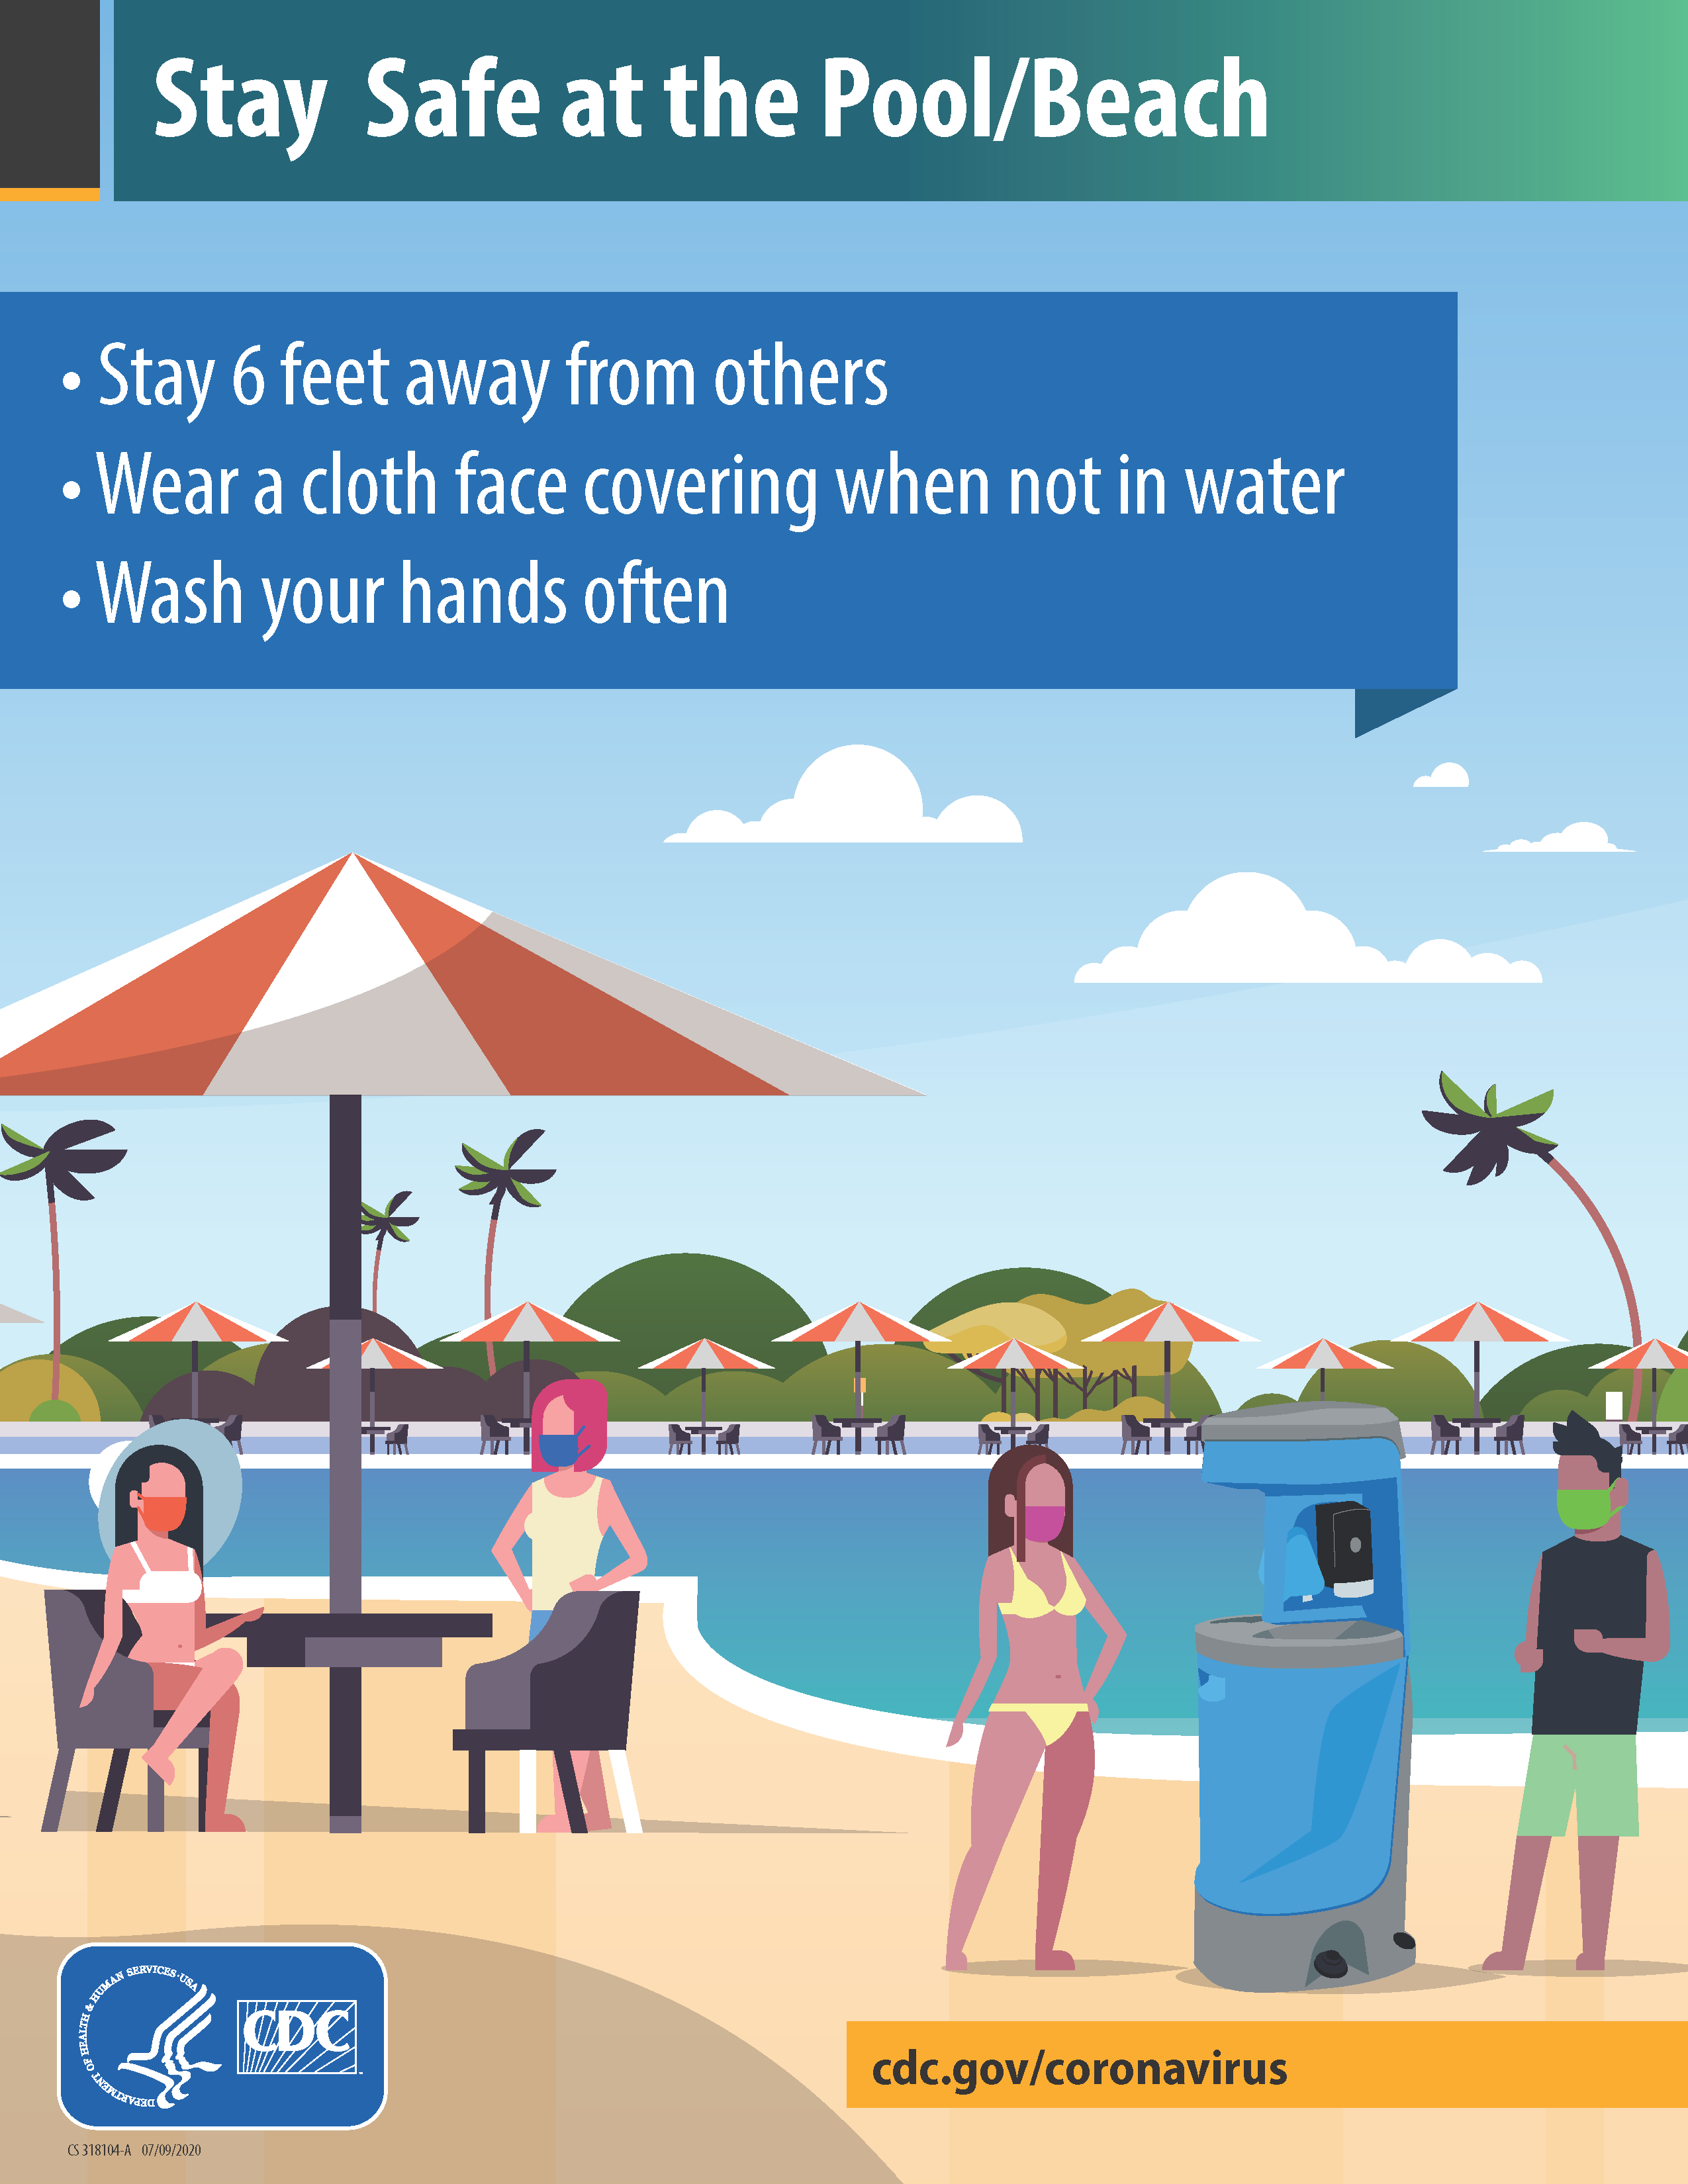 Stay safe at pool beach tips flyer